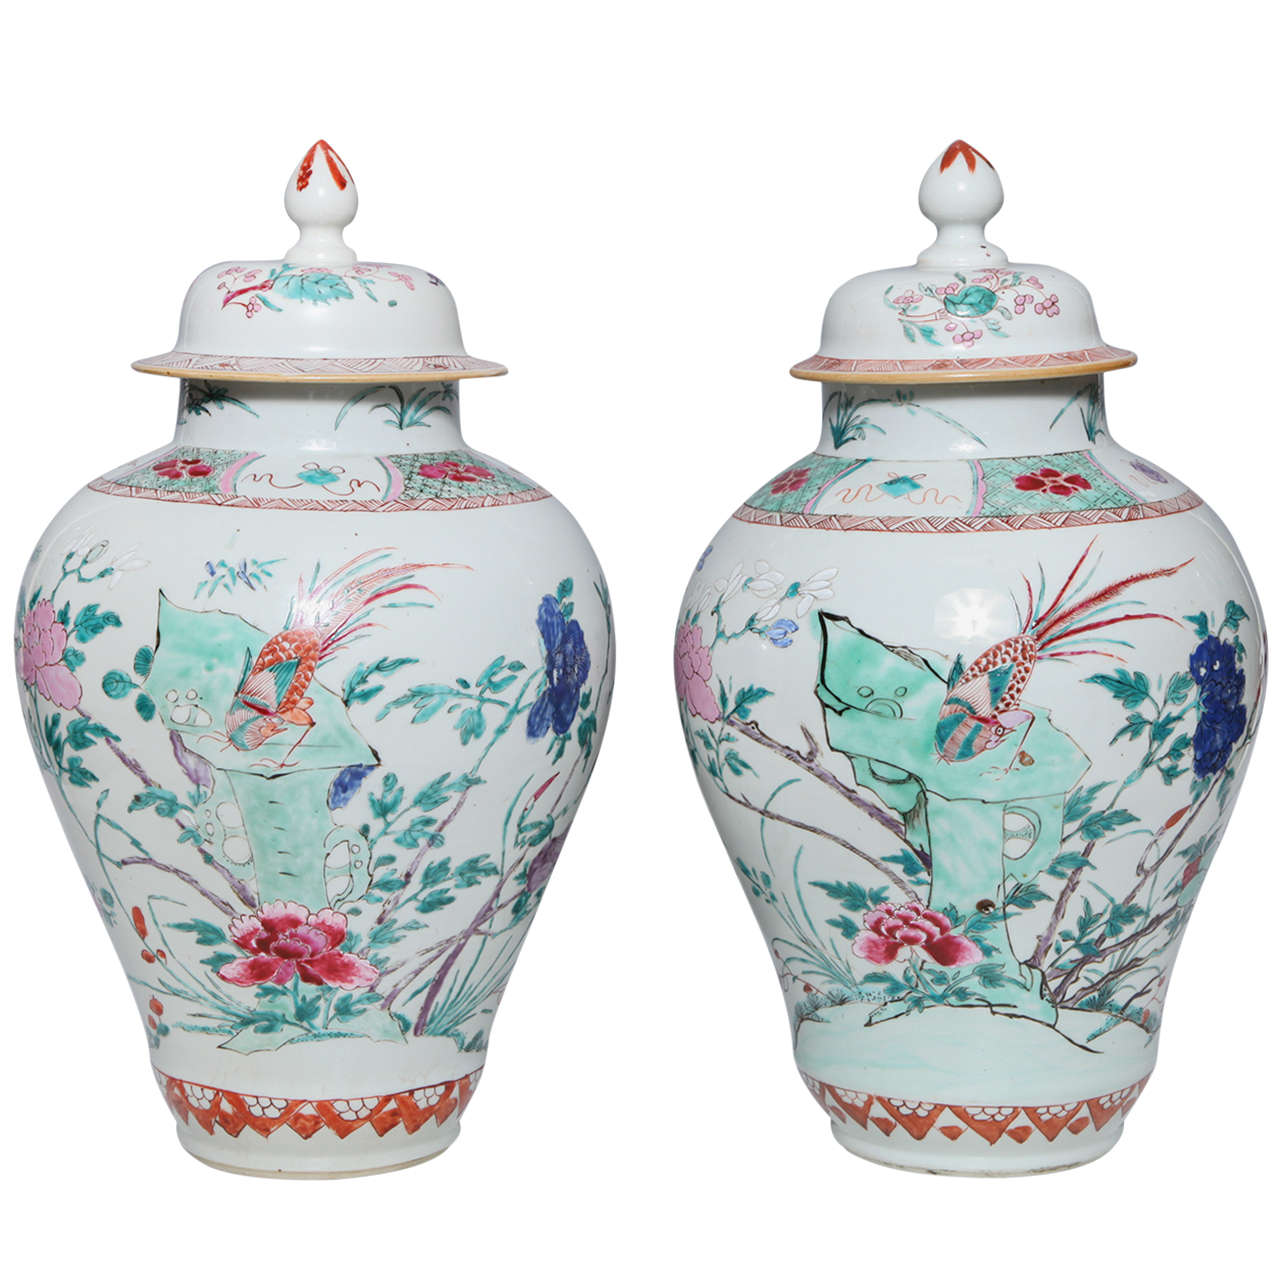 Pair of 18th Century Chinese Export Porcelain Famille Rose Covered Jars